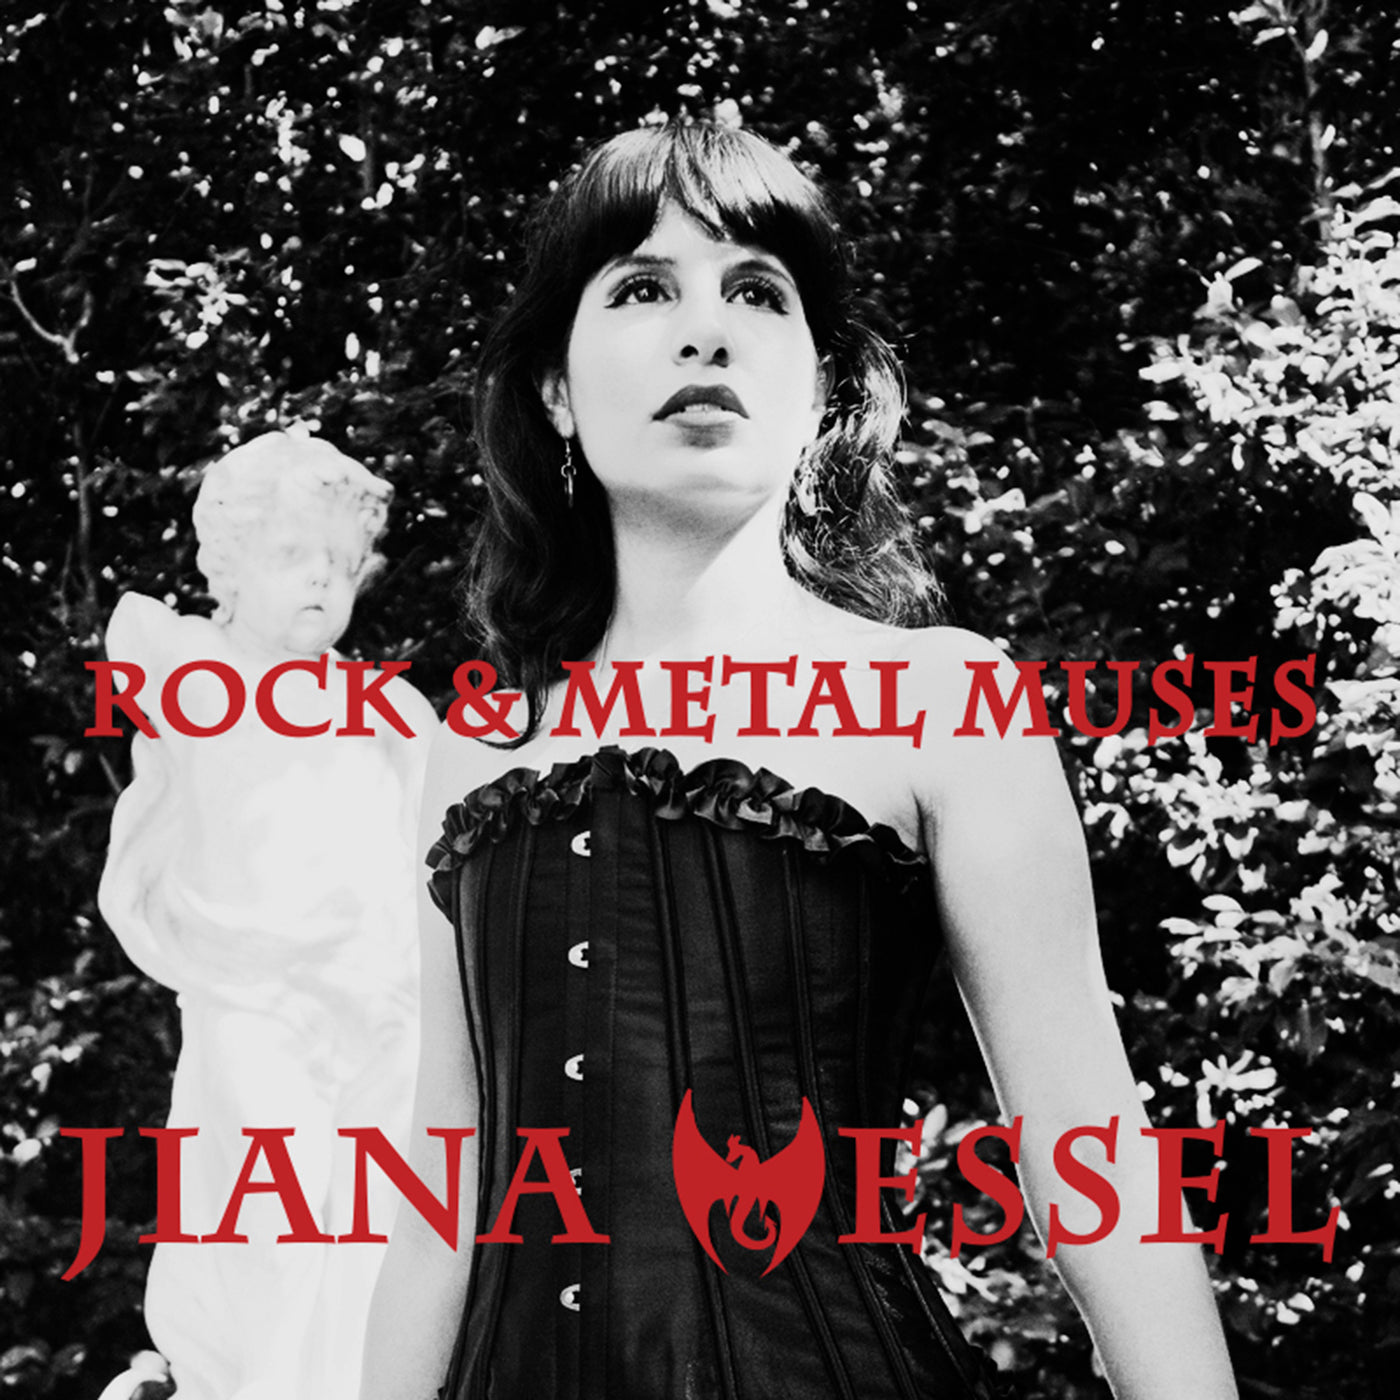 The first recording Jiana Wessel put out in the market we're a tributo the muses who inspired her Amy Lee, Tarja Turunen and Sharon den Adel.